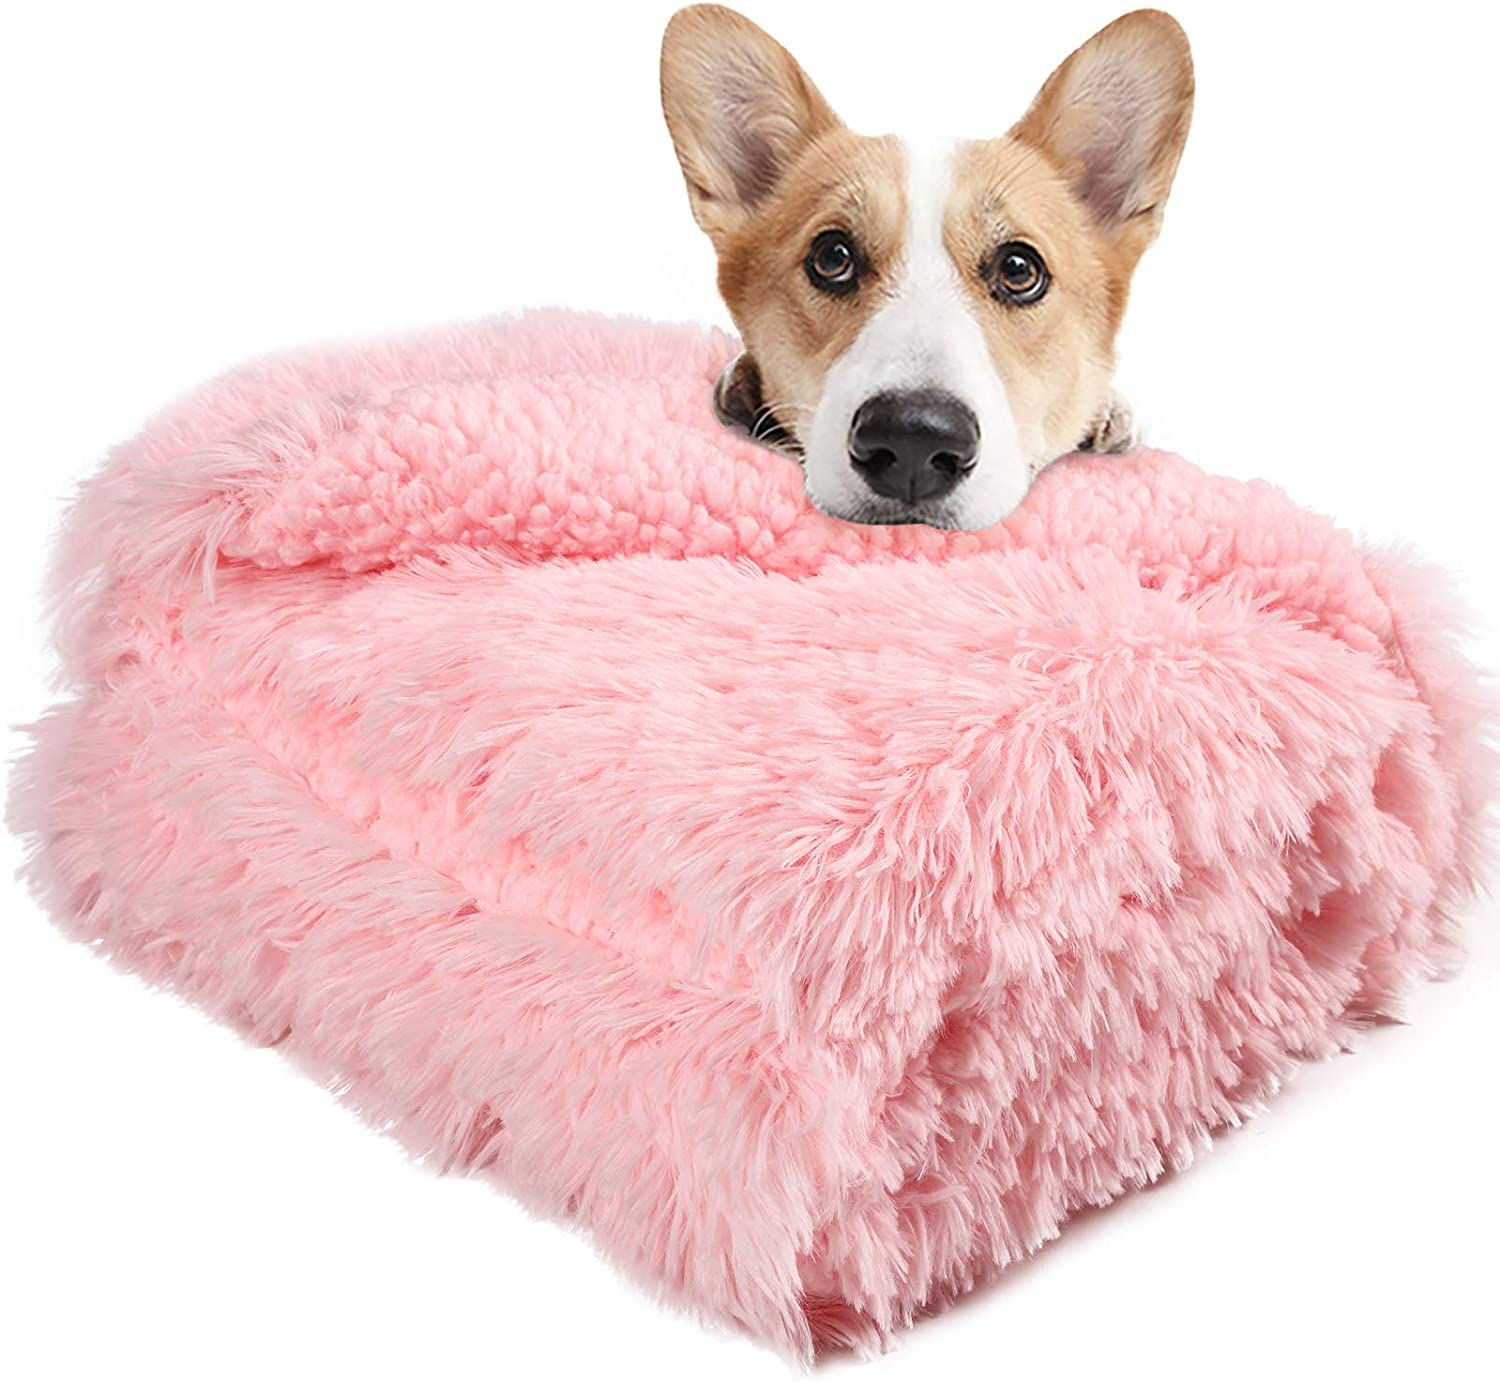 LOCHAS Luxury Velvet Fluffy Dog Blanket, Extra Soft and Warm Sherpa Fleece Pet Blankets for Dogs Cats, Plush Furry Faux Fur Puppy Throw Cover